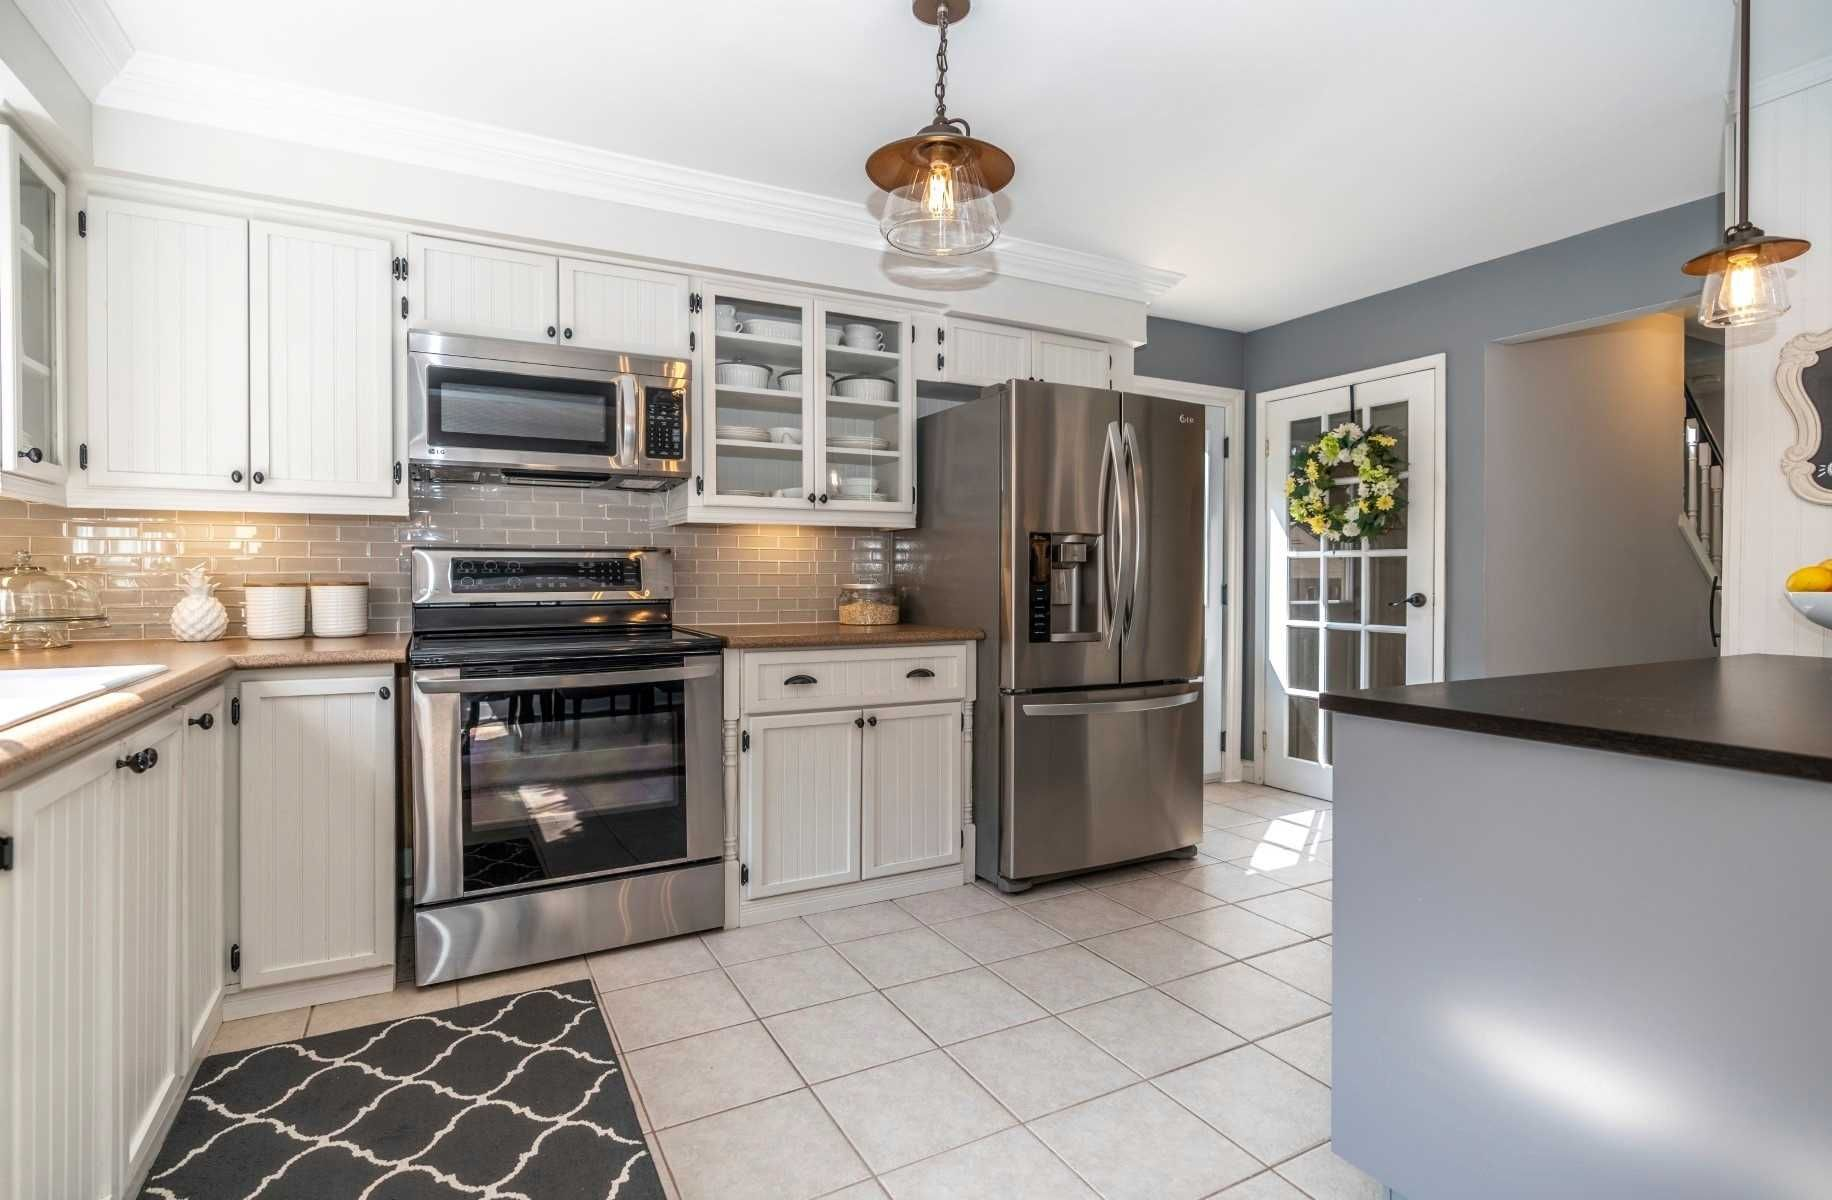 Photo 10: Photos: 547 Camelot Drive in Oshawa: Eastdale House (2-Storey) for sale : MLS®# E4529227